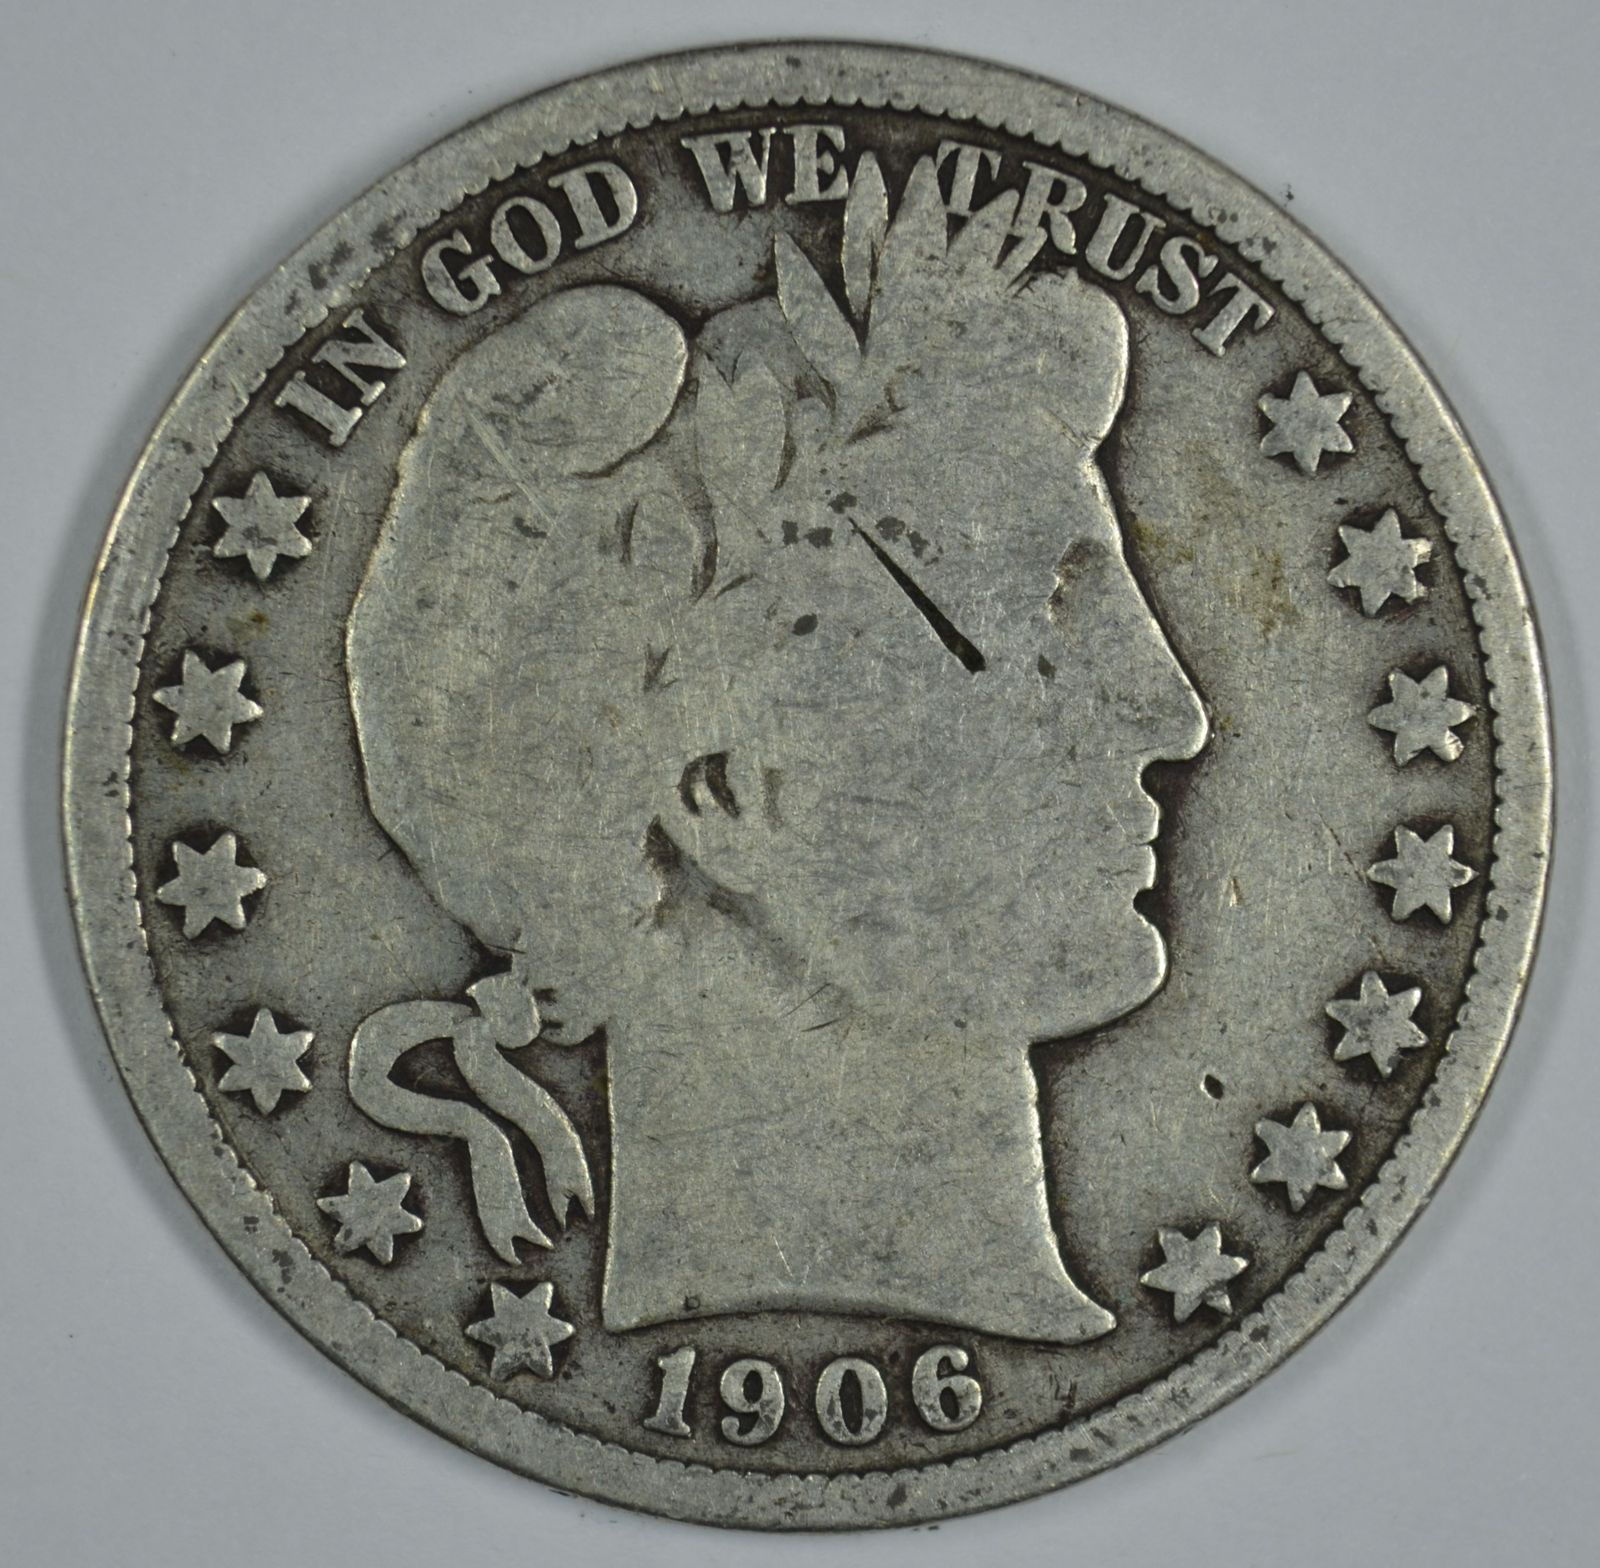 Primary image for 1906 P Barber circulated silver half